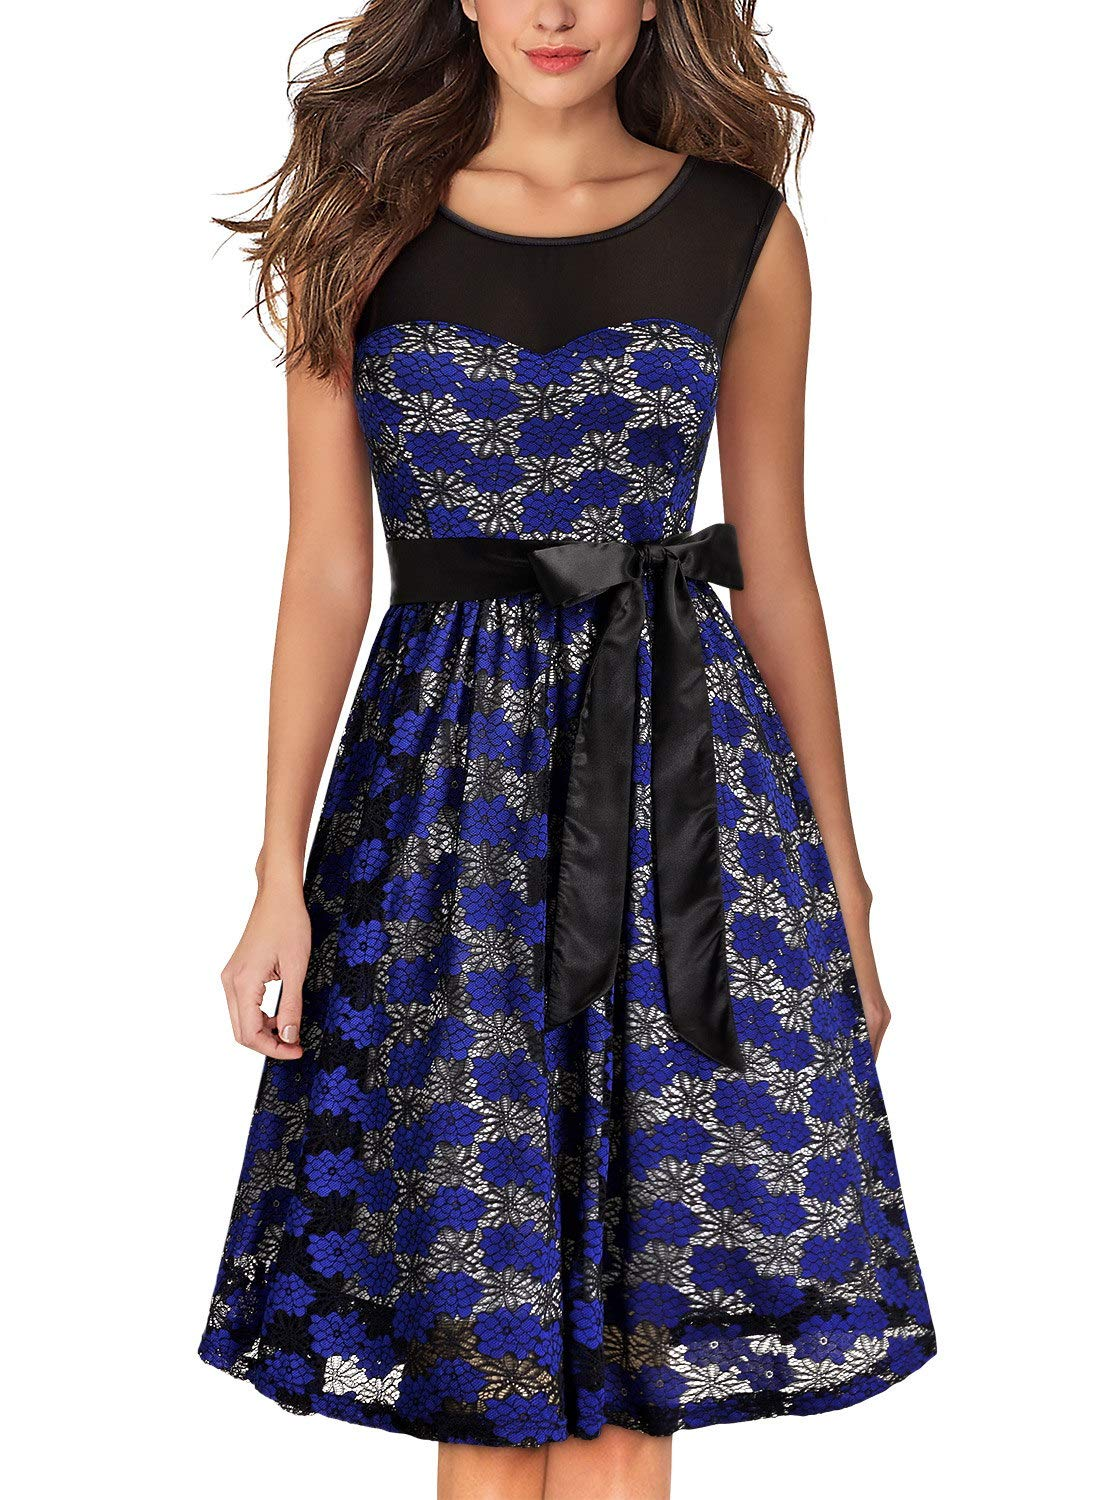 MissMay Women's Vintage Half Sleeve Floral Lace Cocktail Party Pleated Swing Dress GHA8015HEI01